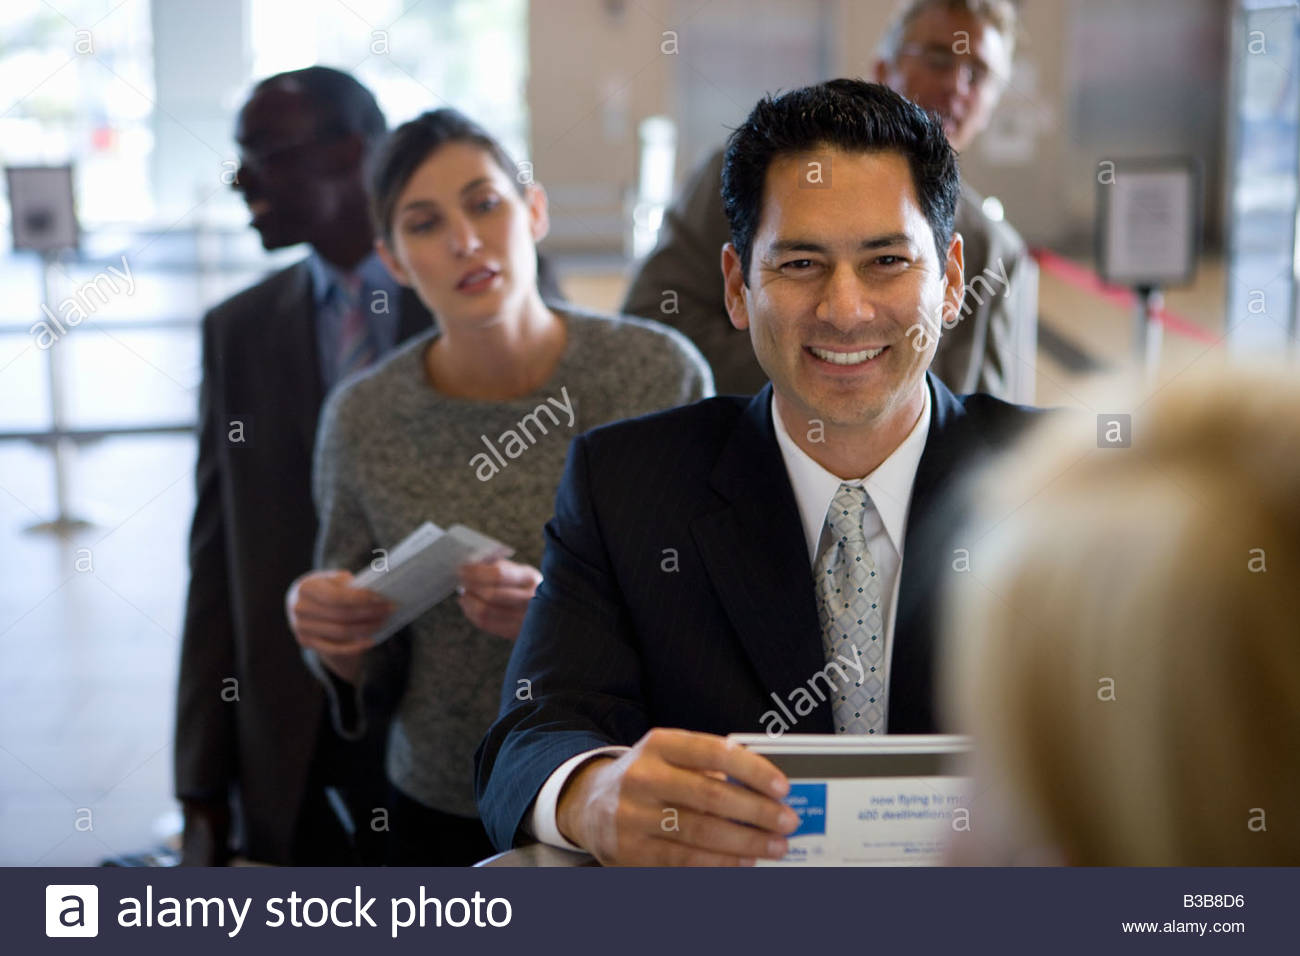 Businesspeople waiting in line in airport - Stock Image